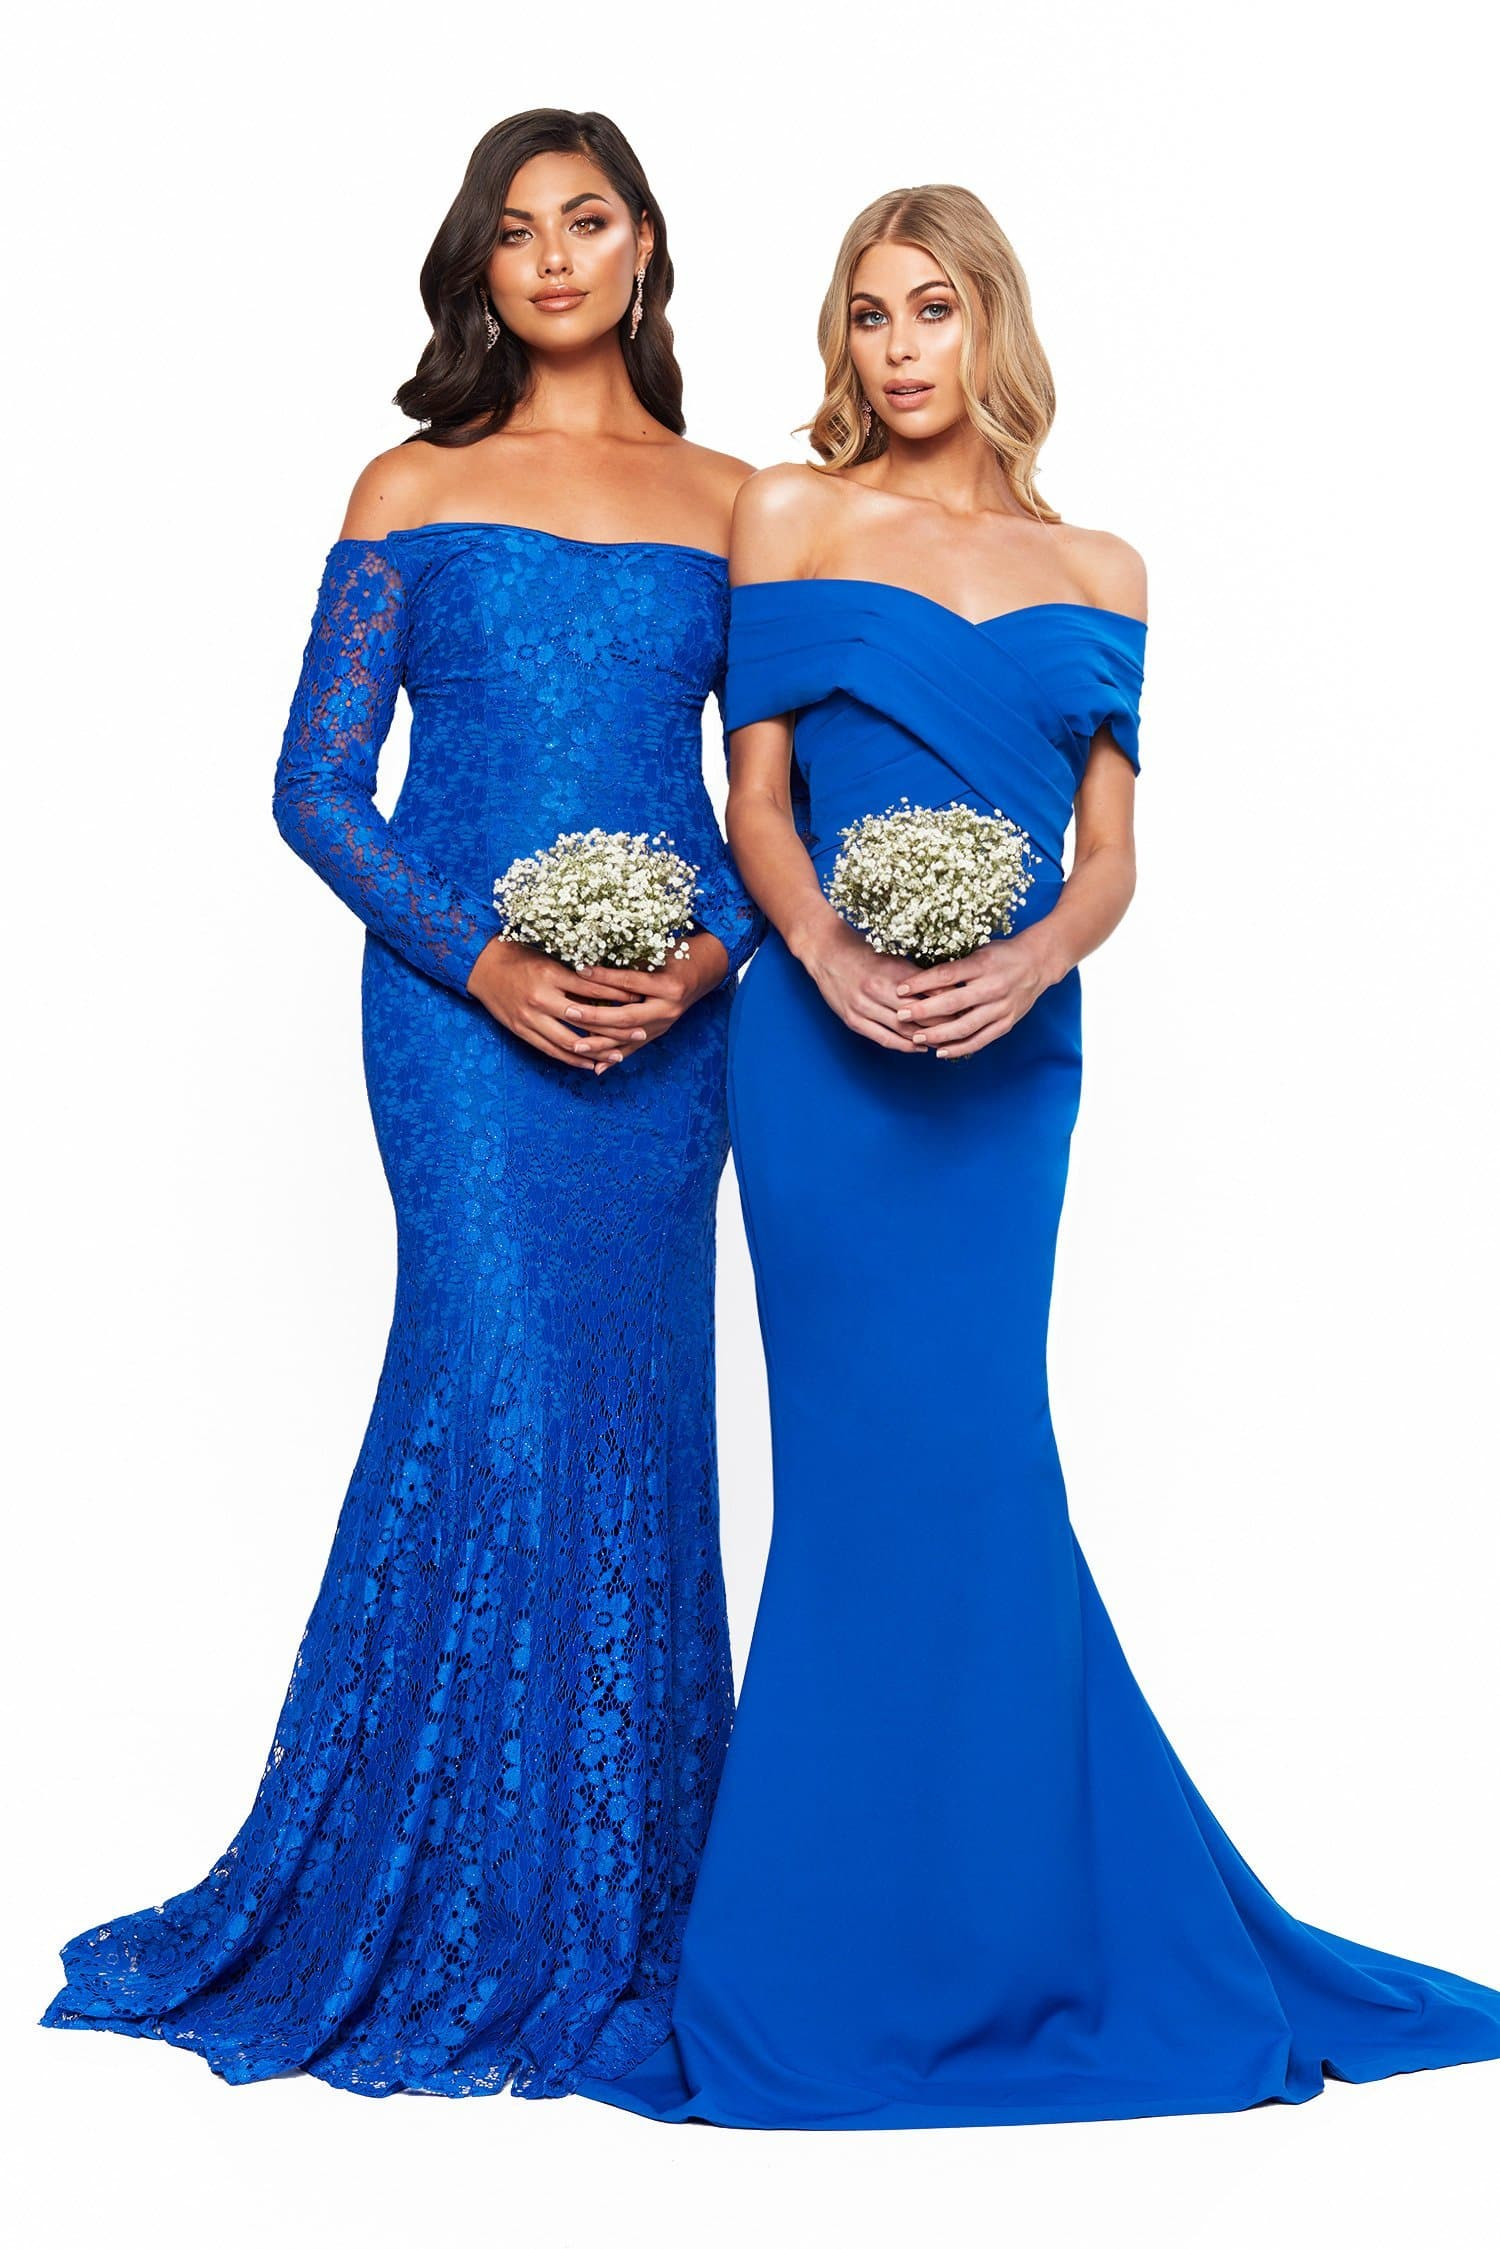 A&N Bridesmaids Jocelyn Off-Shoulder Mermaid Gown - Royal Blue